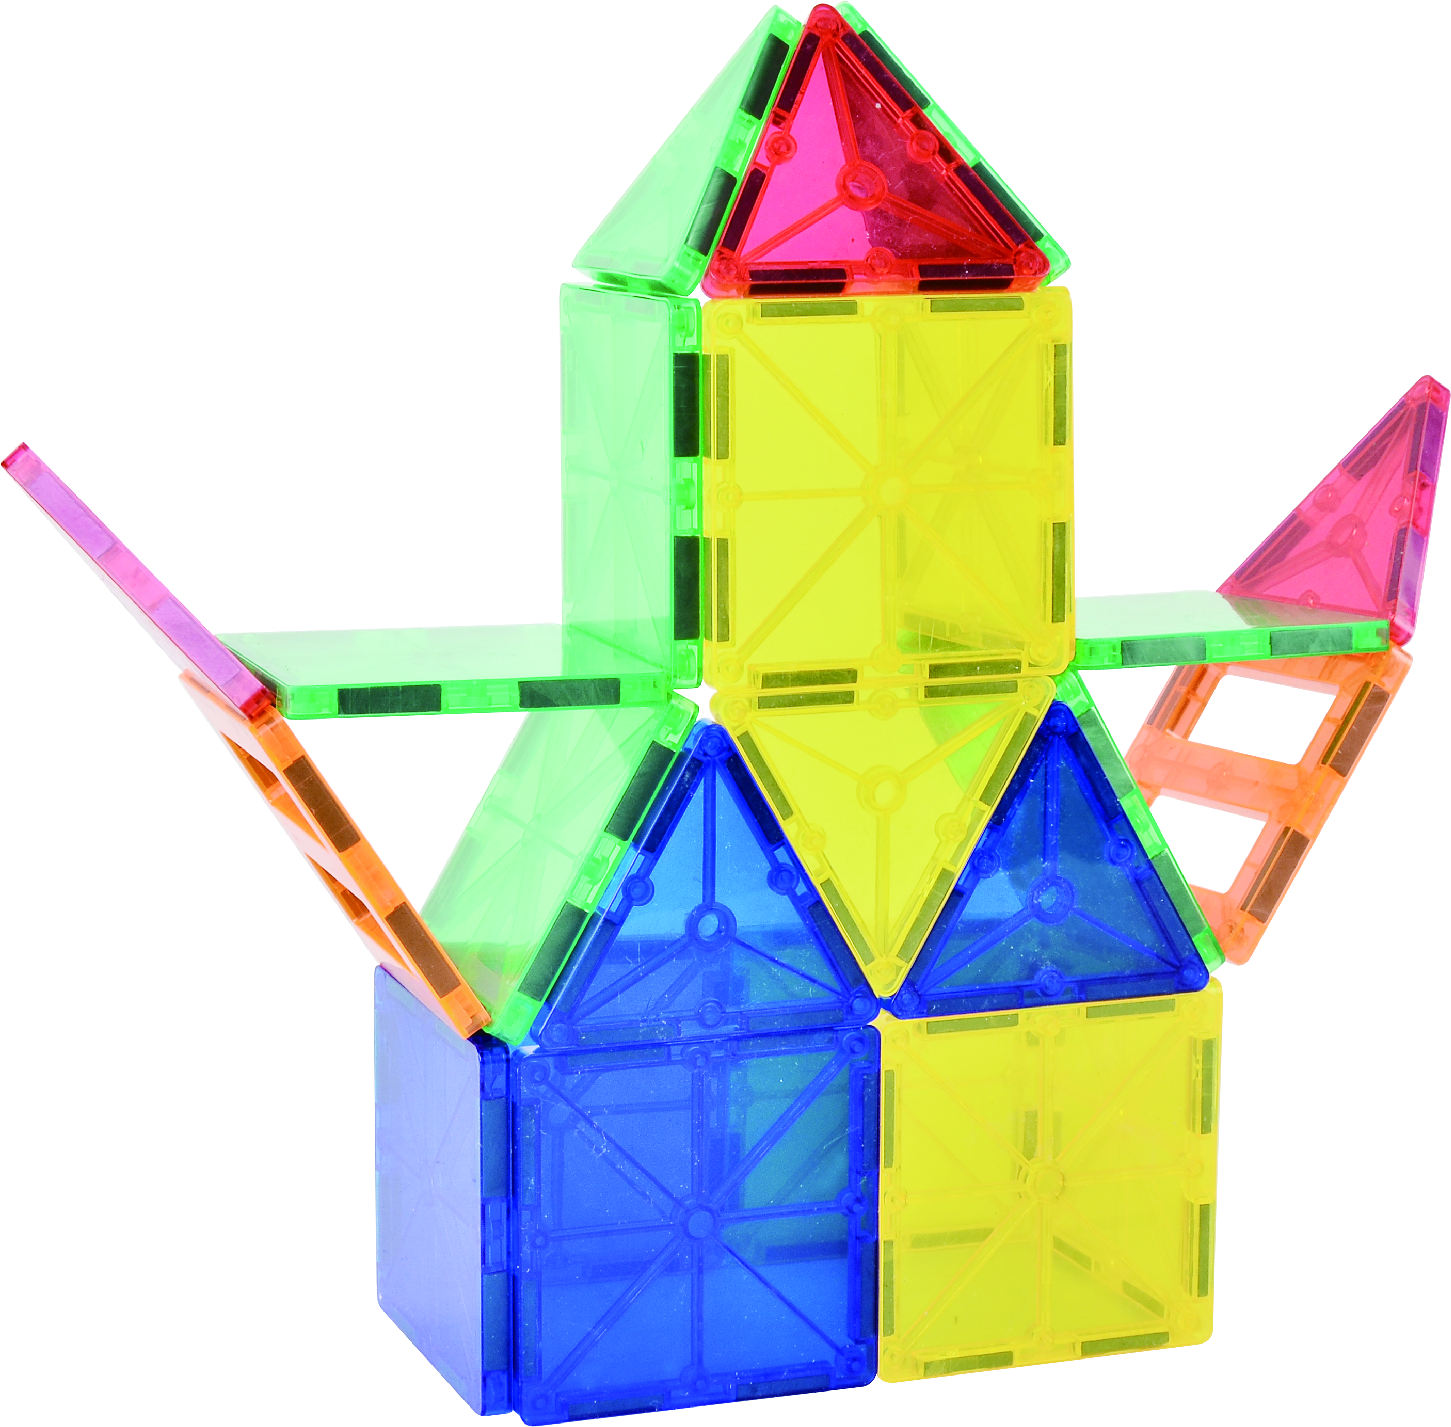 Hot selling playmager connecting Magnetic Building Blocks 3D Magnetic Building Tiles Set magna tiles toys